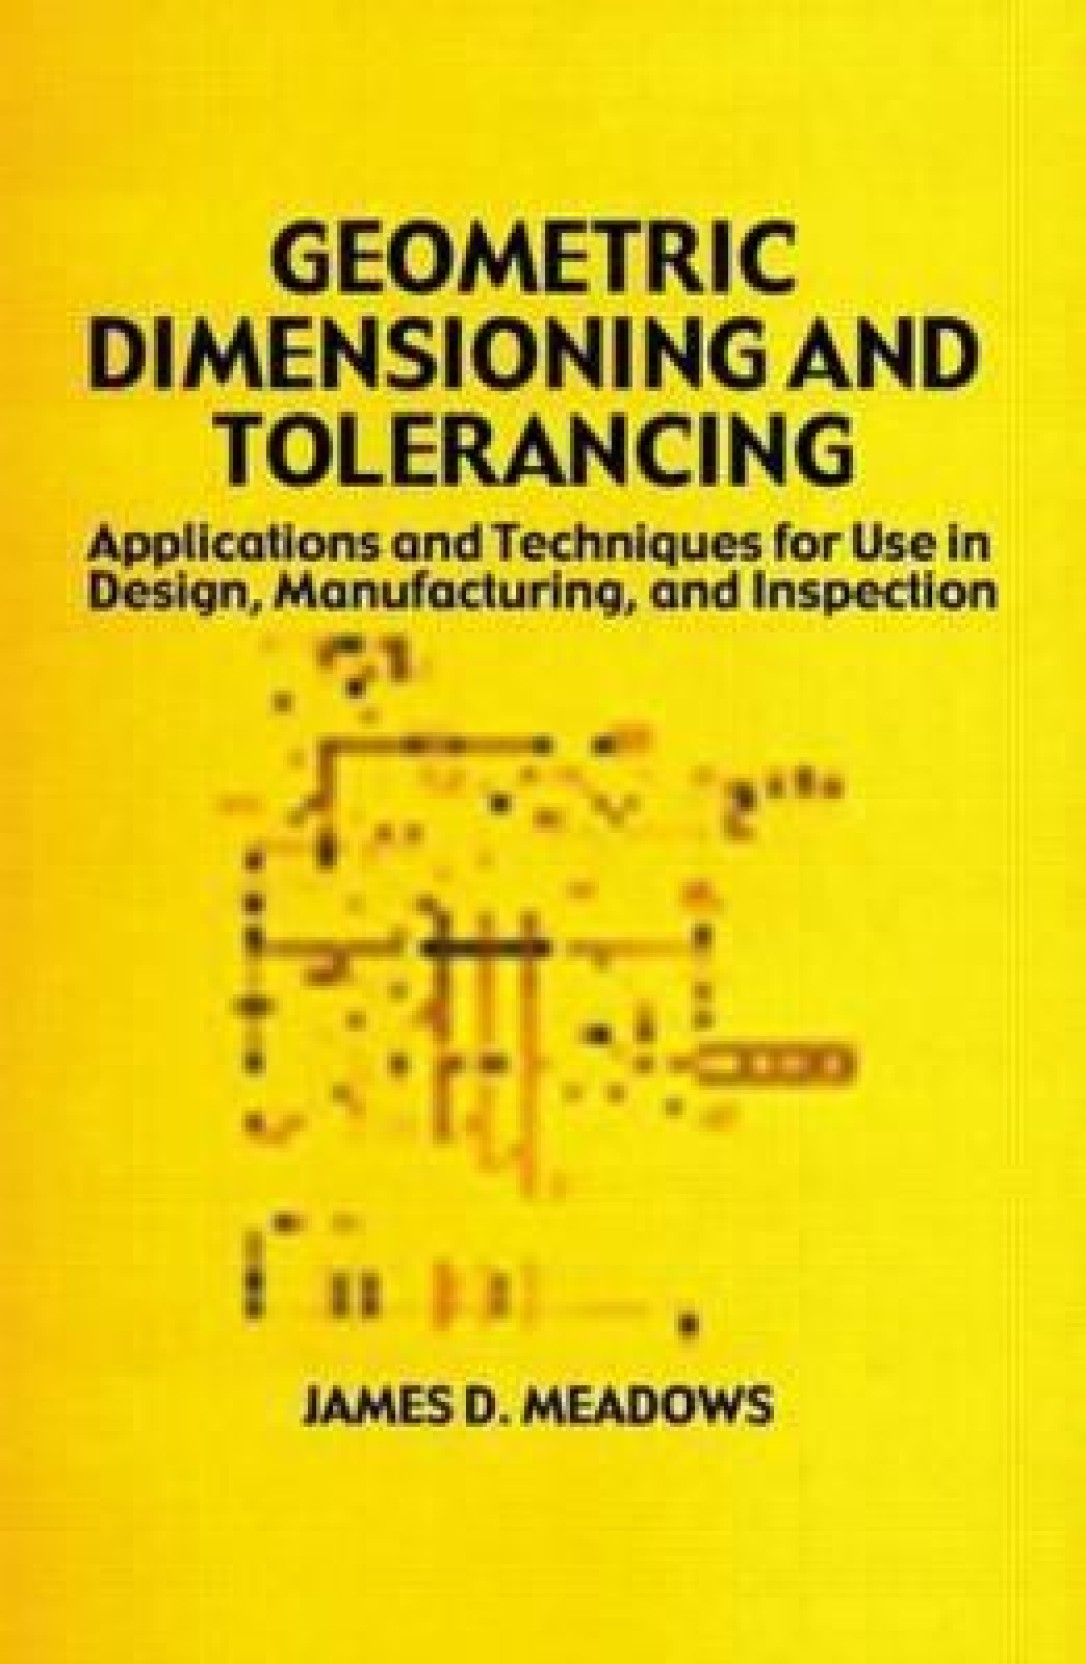 Geometric dimensioning and tolerancing buy geometric dimensioning geometric dimensioning and tolerancing share buycottarizona Image collections